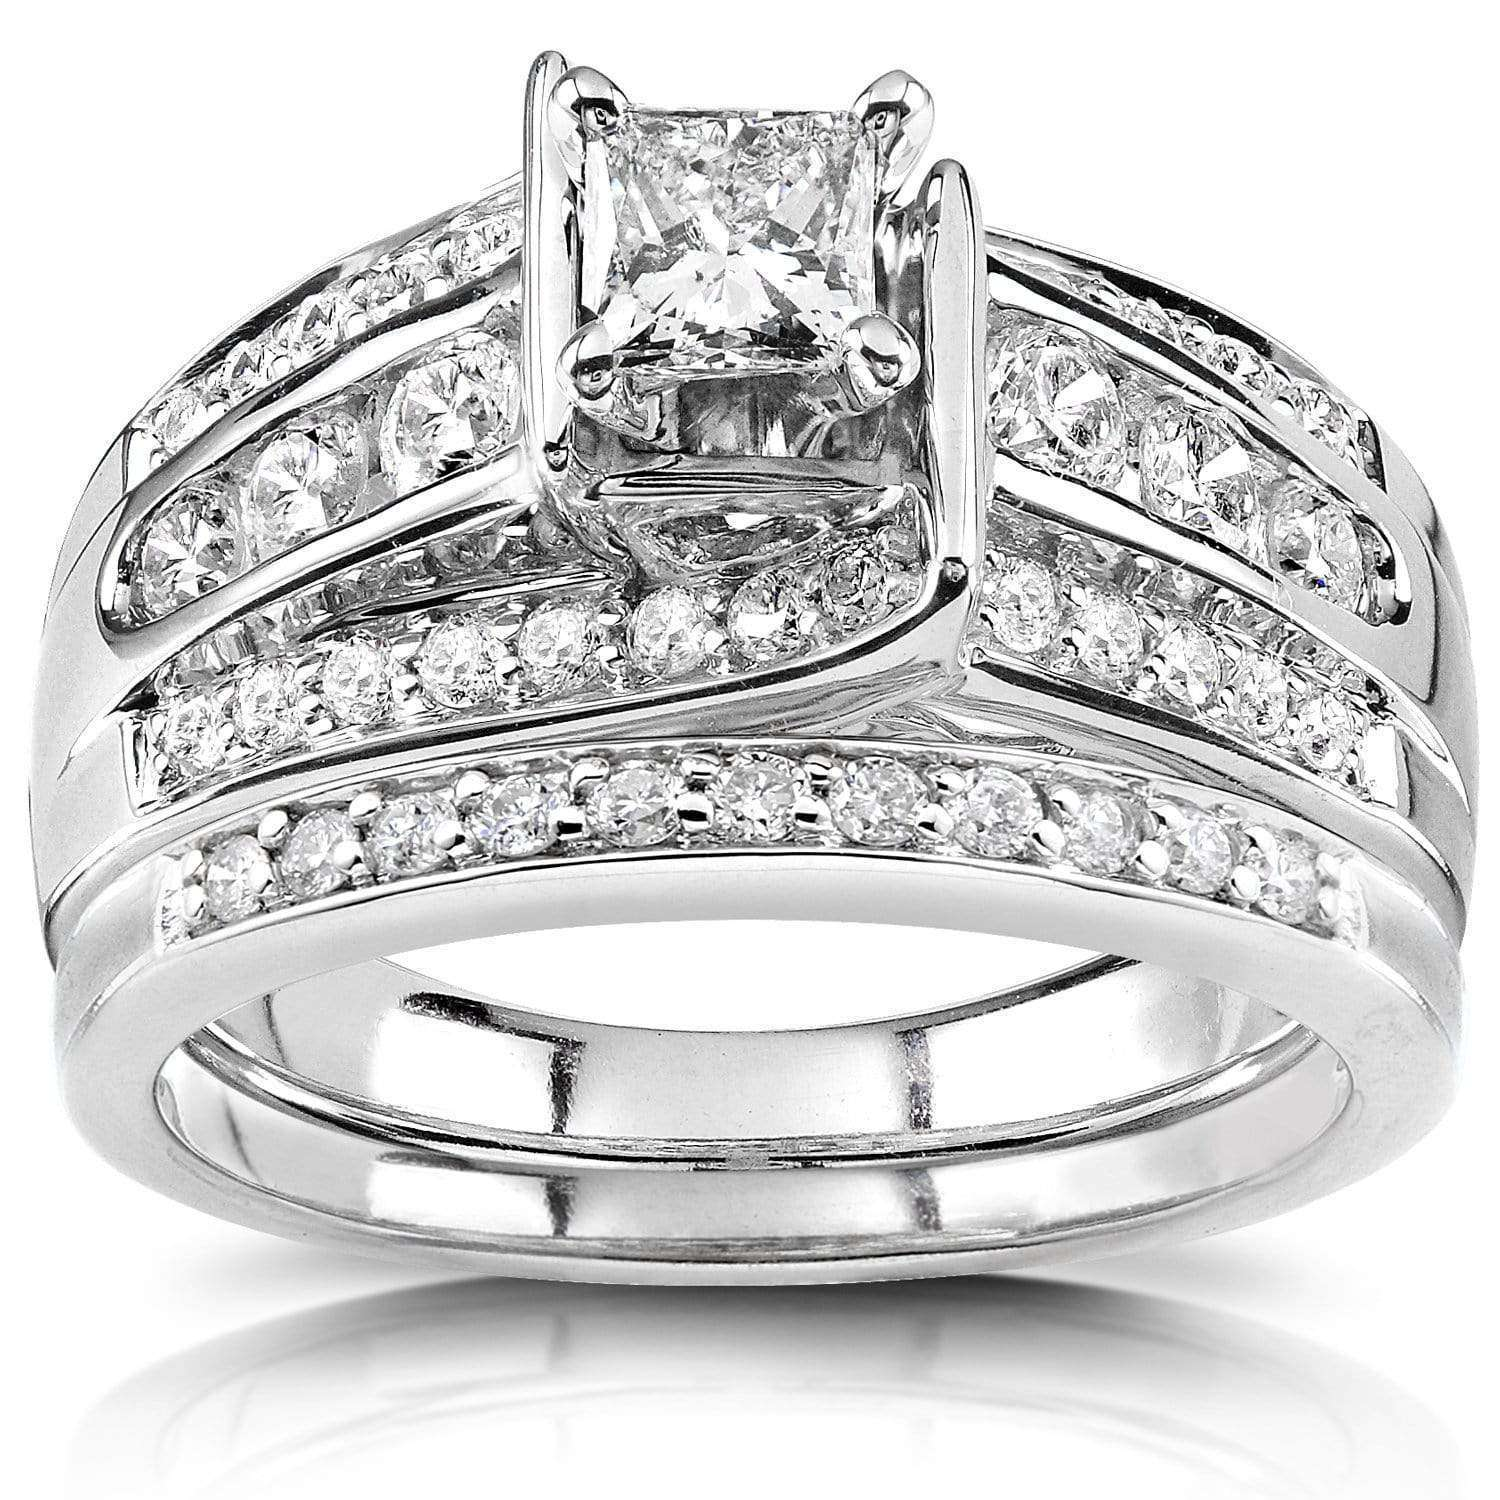 Compare Princess Diamond Bridal Set 1 CTW in Platinum - 6.5